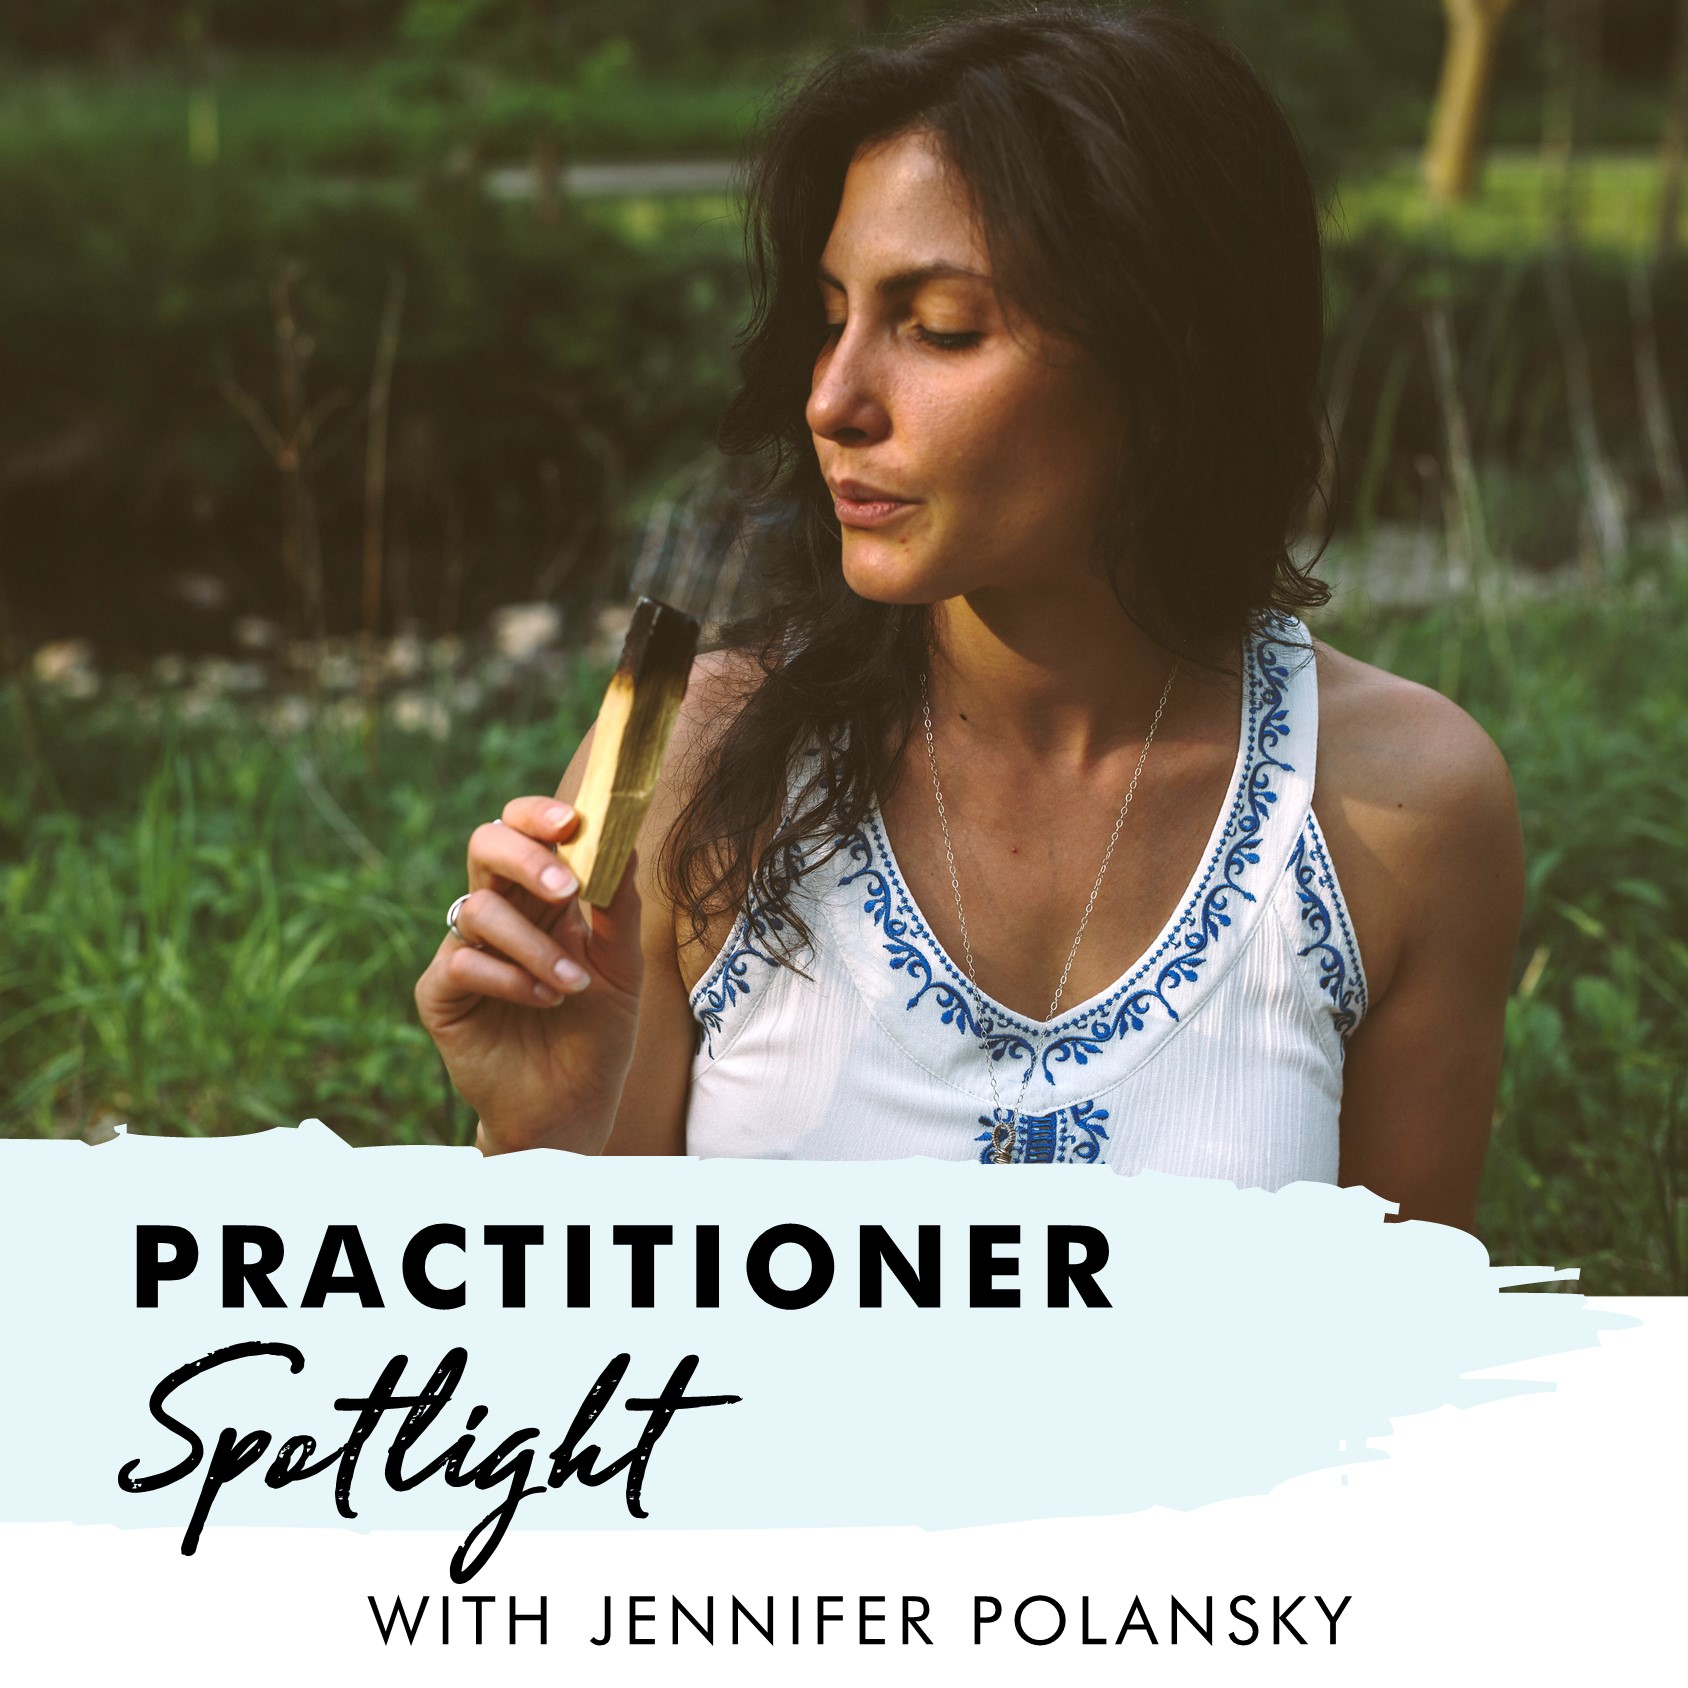 Practitioner Spotlight Series Jennifer Polansky